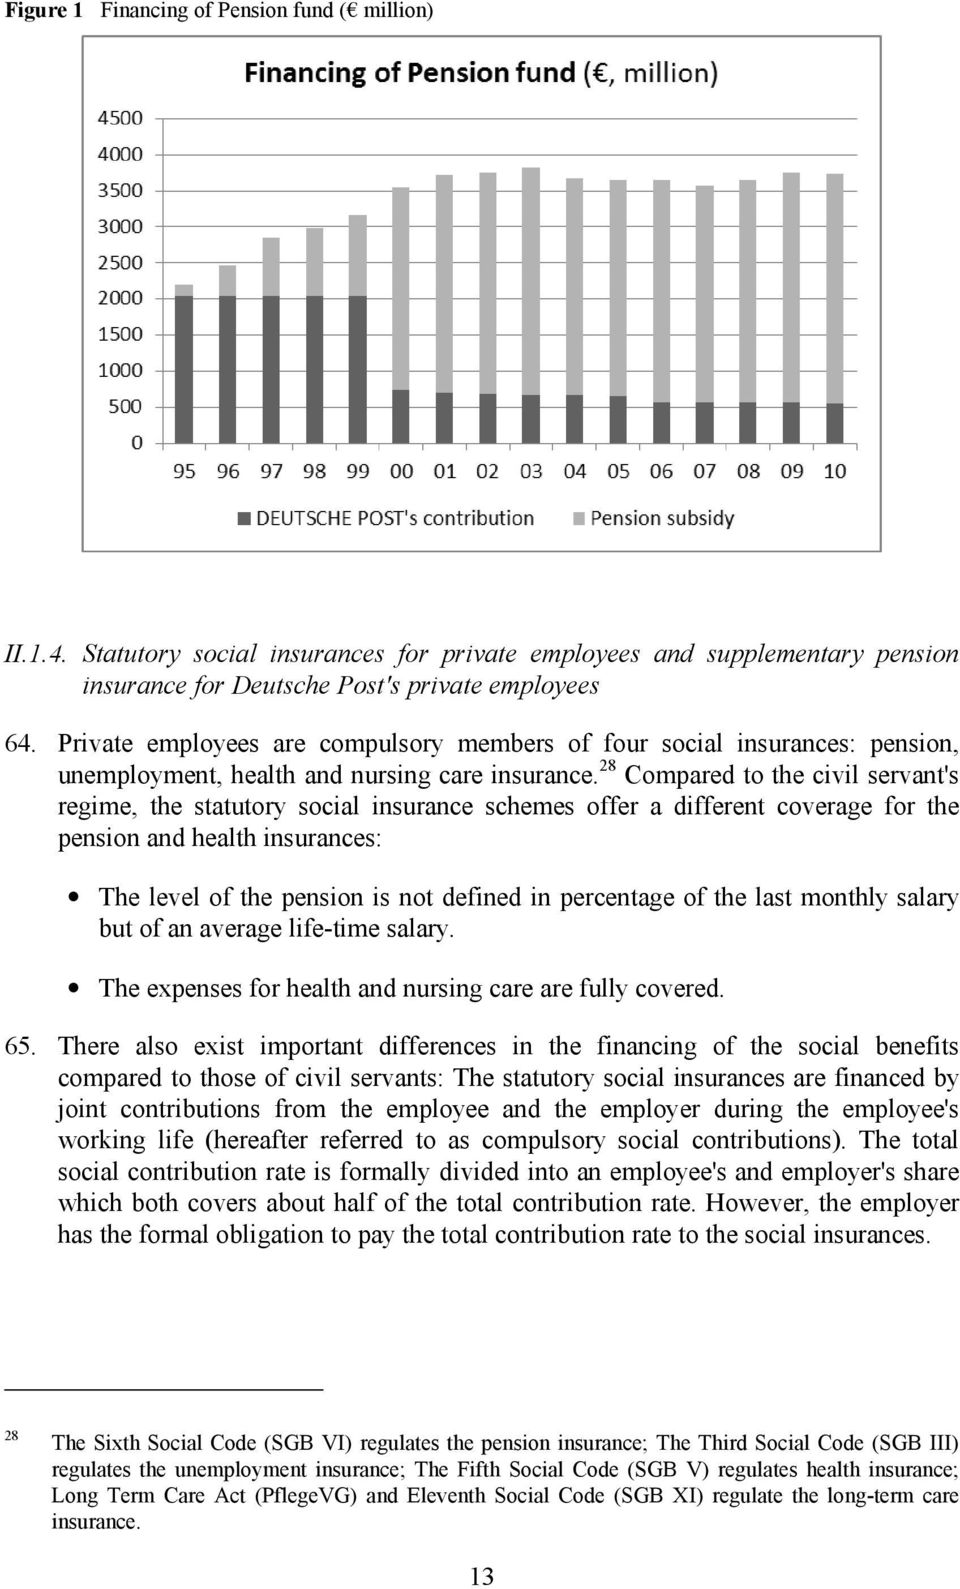 28 Compared to the civil servant's regime, the statutory social insurance schemes offer a different coverage for the pension and health insurances: The level of the pension is not defined in